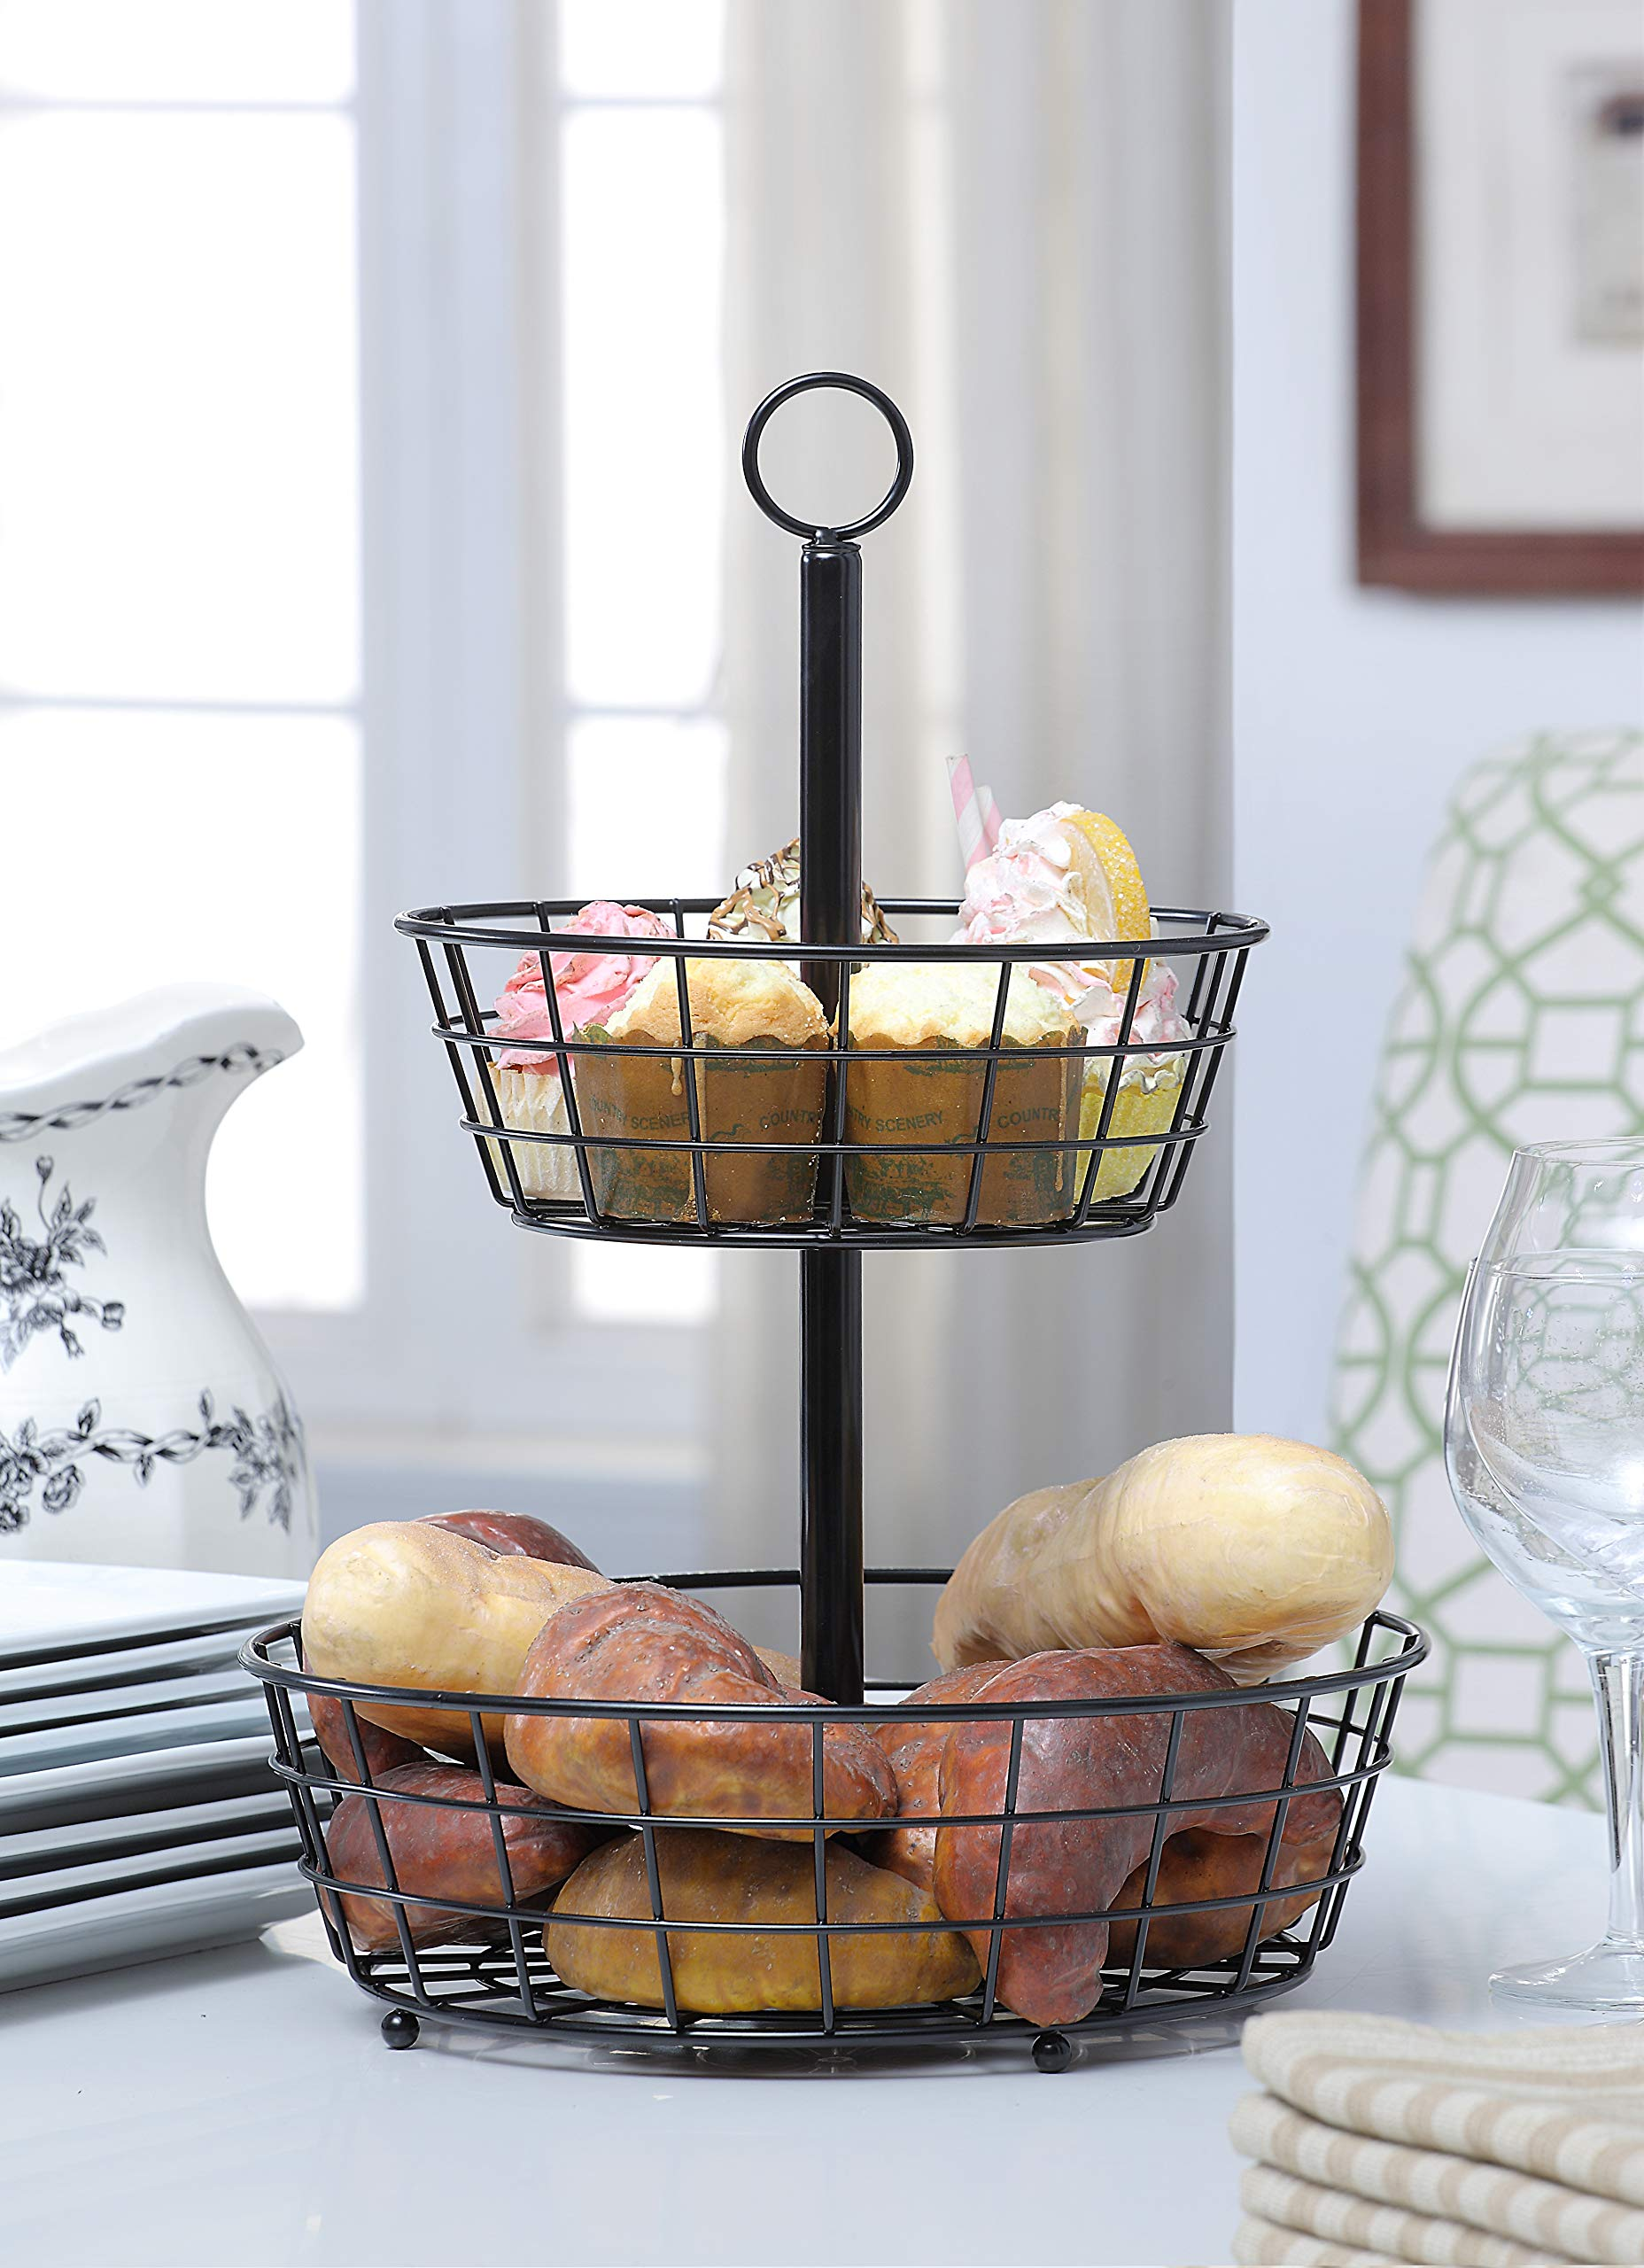 SunnyPoint Tabletop 2-Tier Countertop Fruit Basket Stand by SunnyPoint (Image #3)